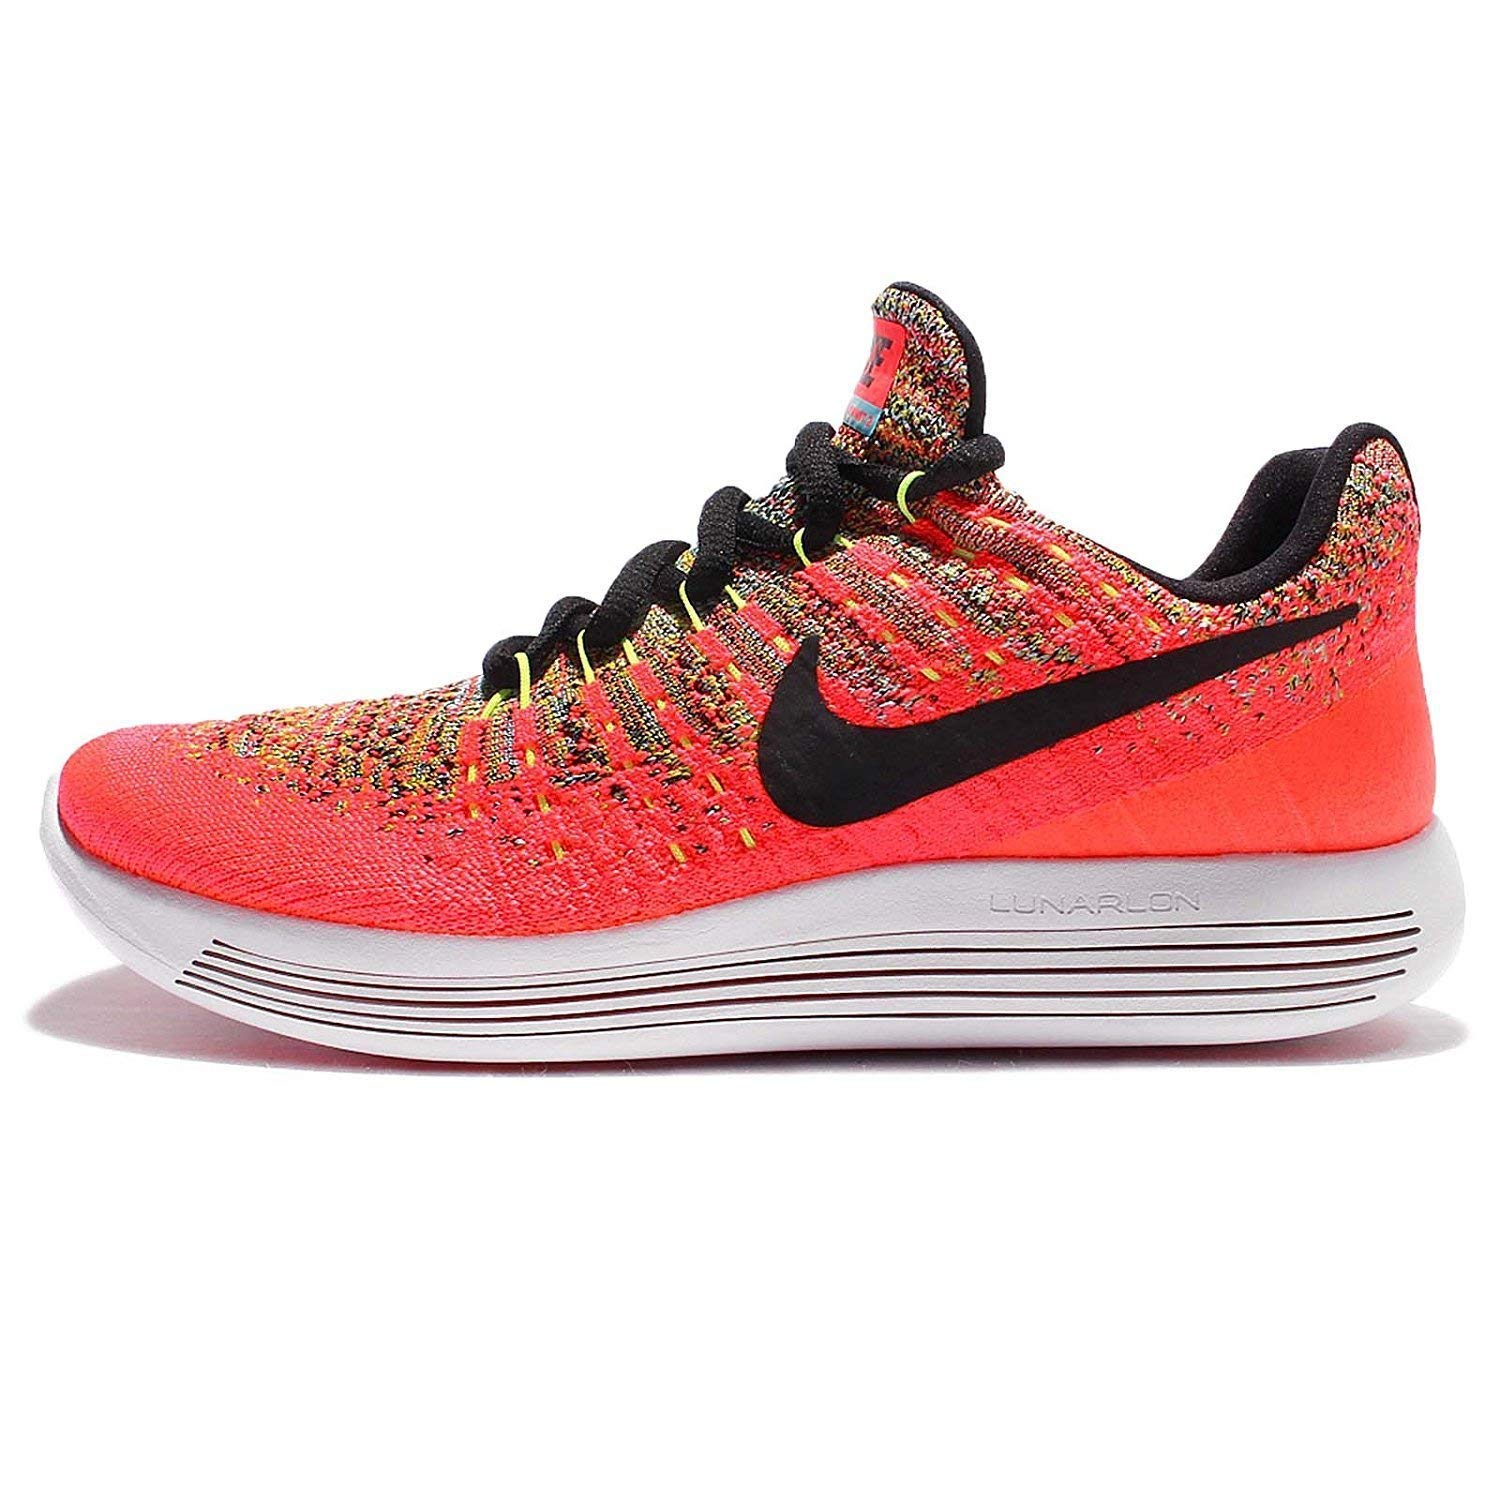 2dba6fbb742096 ... canada amazon nike lunarepic low flyknit kids 2 running shoes running  b2a49 5af6c